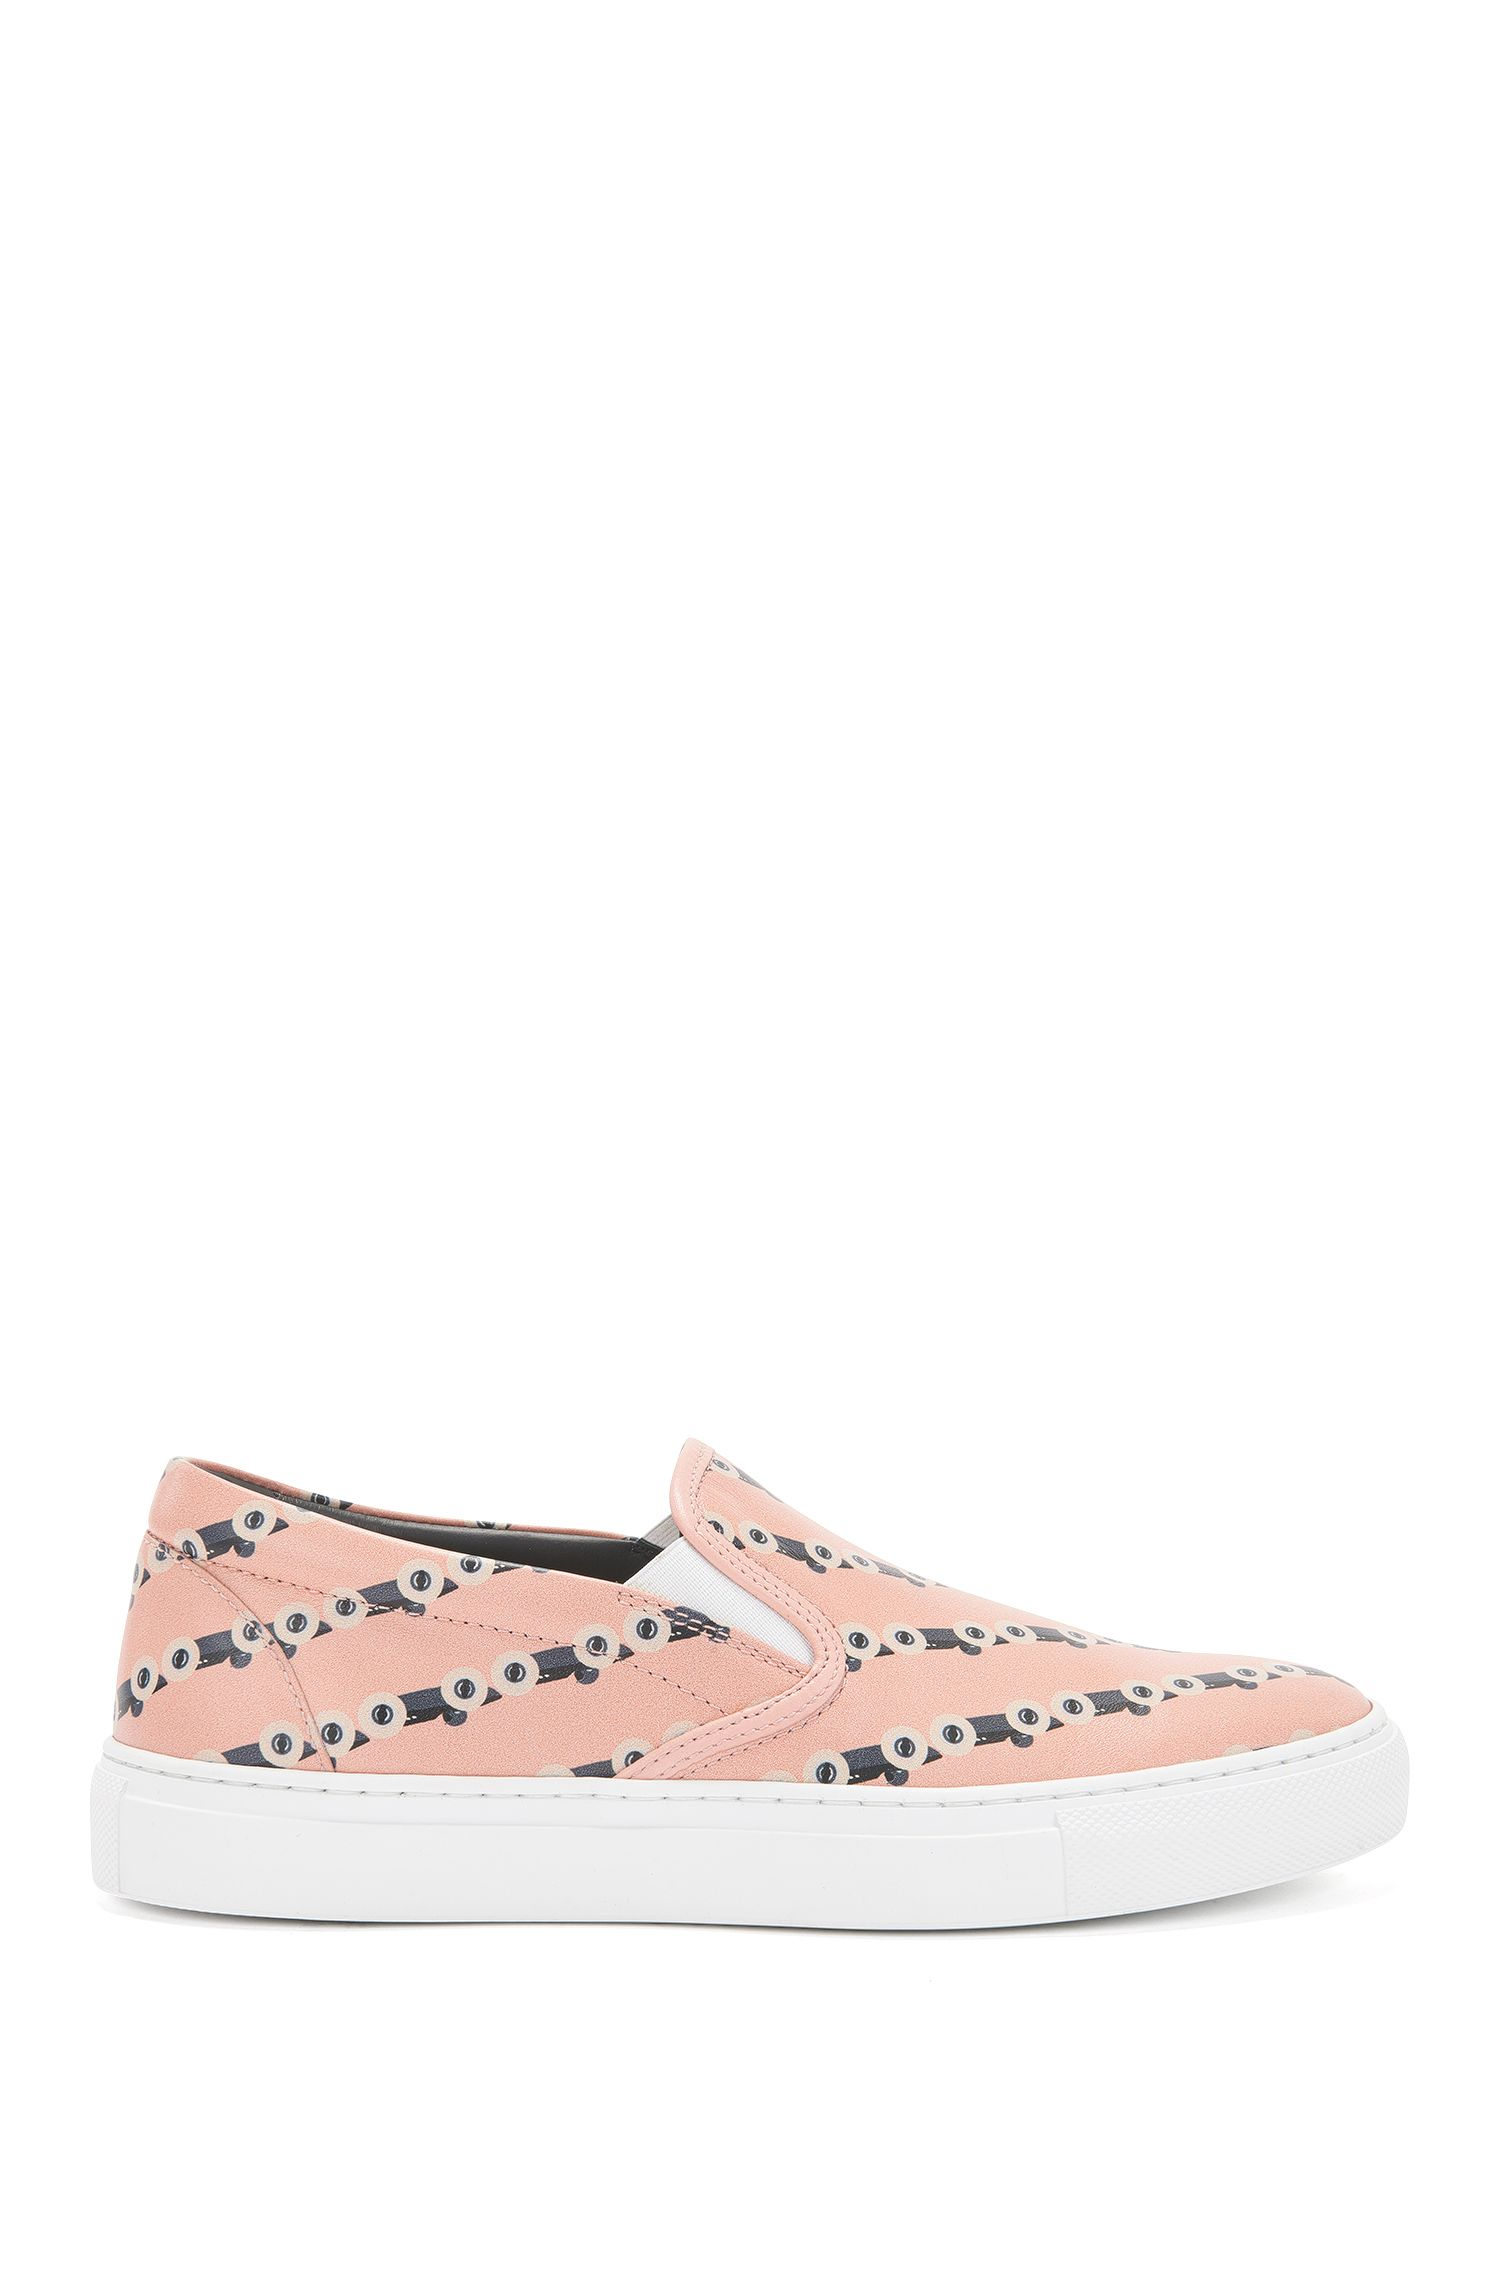 Slip-on leather trainers with race car print